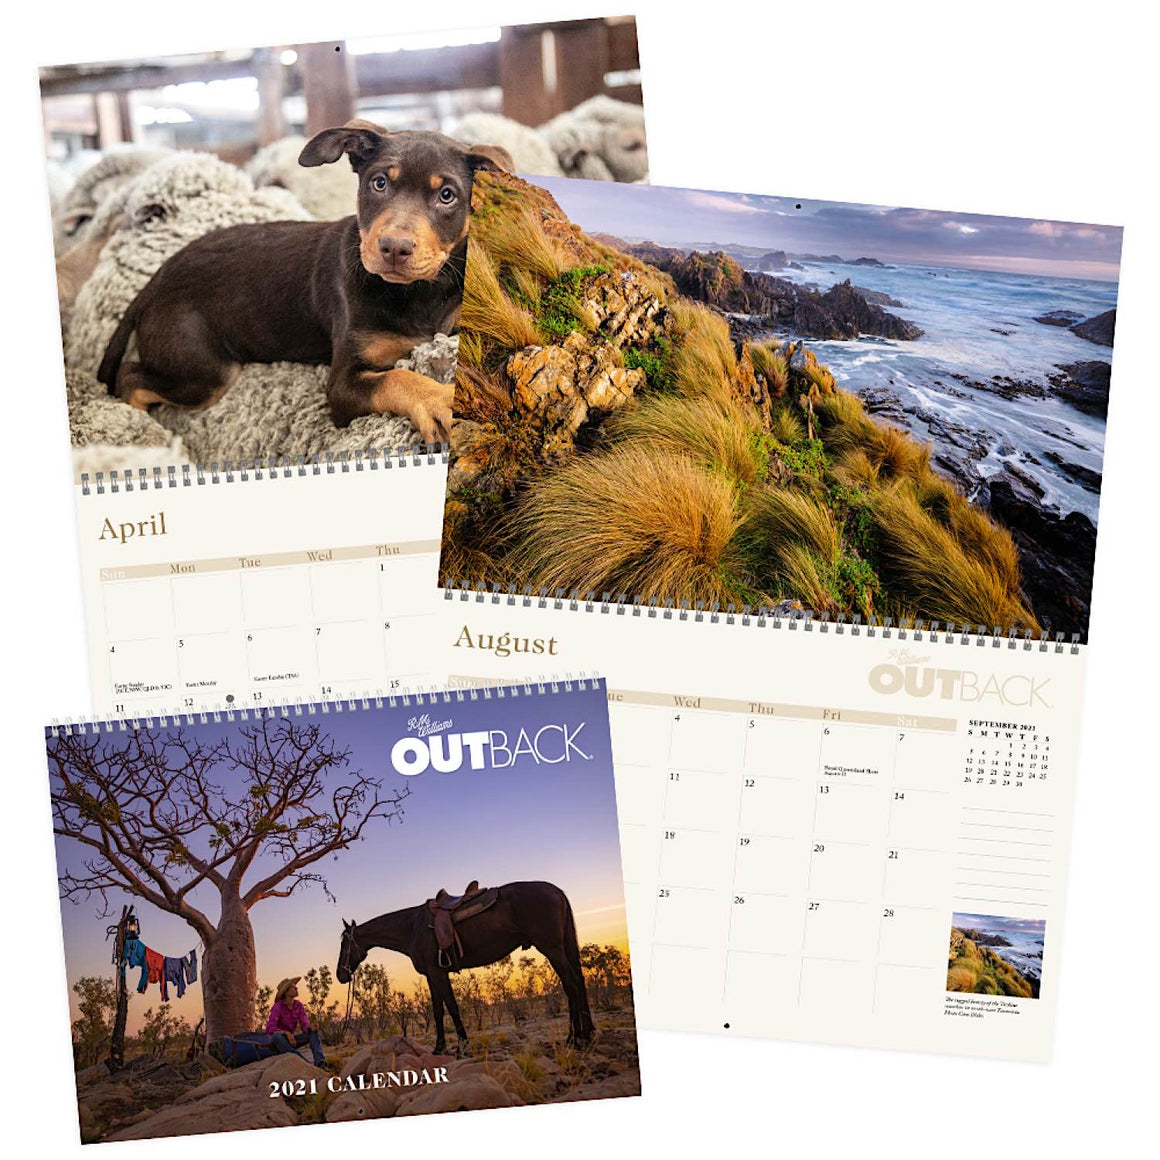 R.M.Williams 2021 Outback Calendar